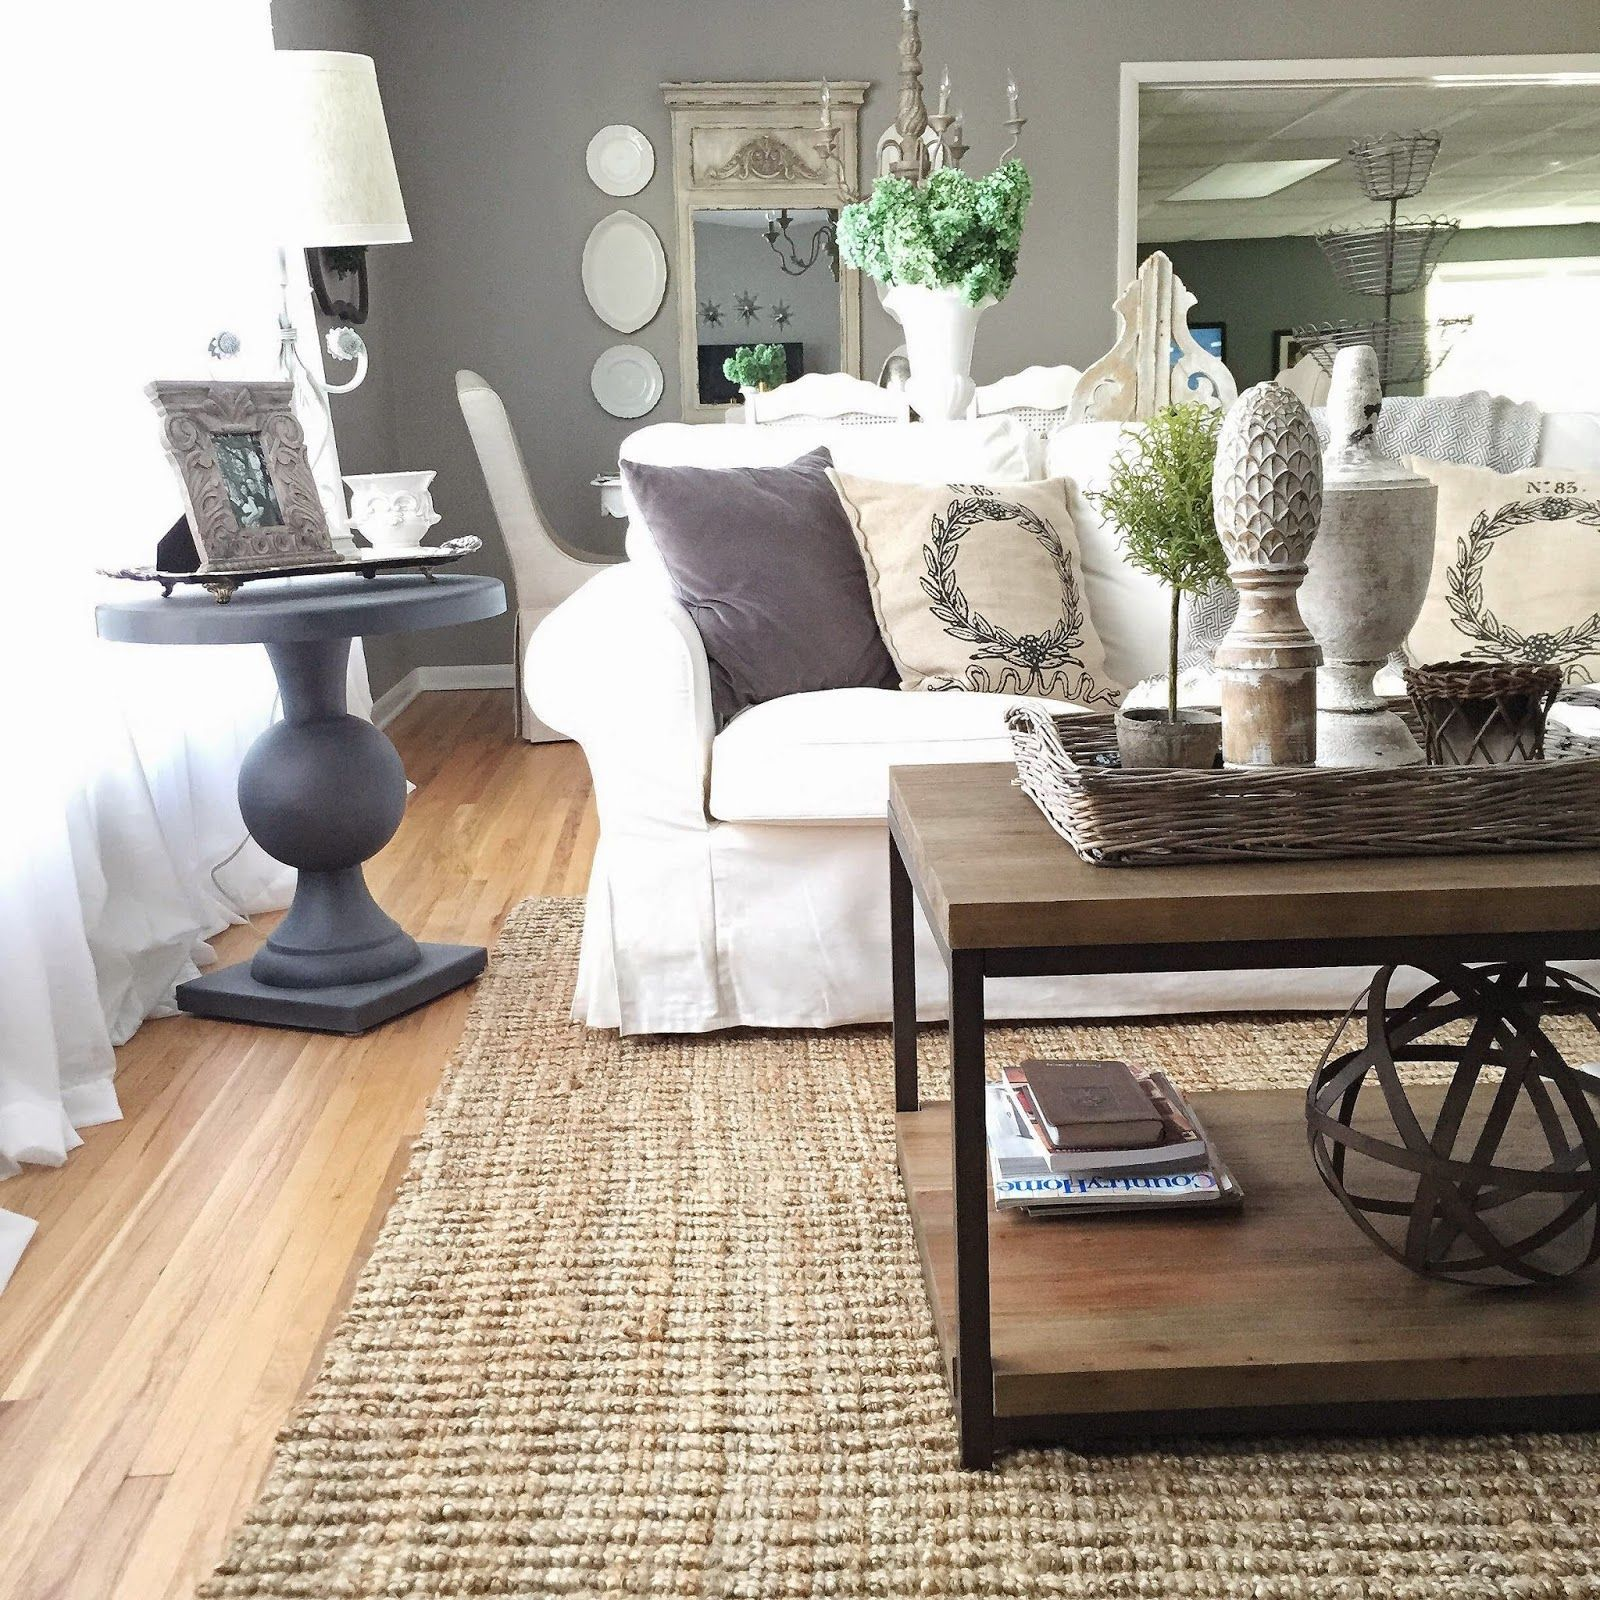 white couch living room ideas furniture columbus ohio eclectic home tour 12th and pinterest the cozy cottage of blog get tons great for decorating on a budget mixing new vintage finds